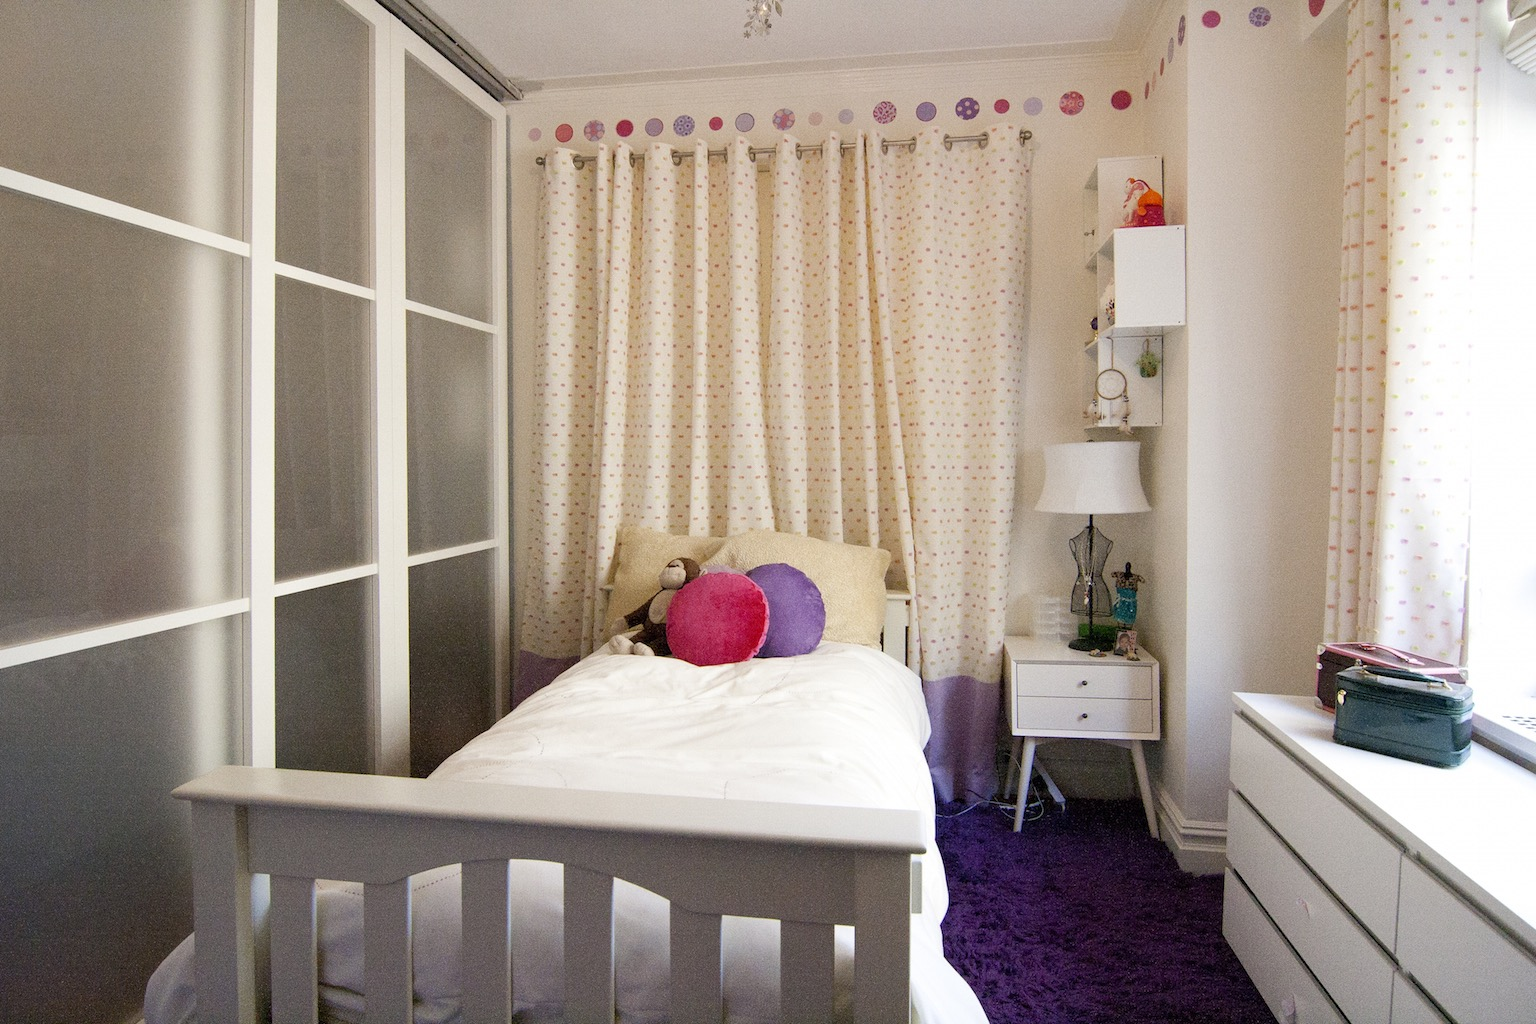 Chic Girl's Bedroom With Polka Dot Accents For Small Apartment (View 8 of 30)